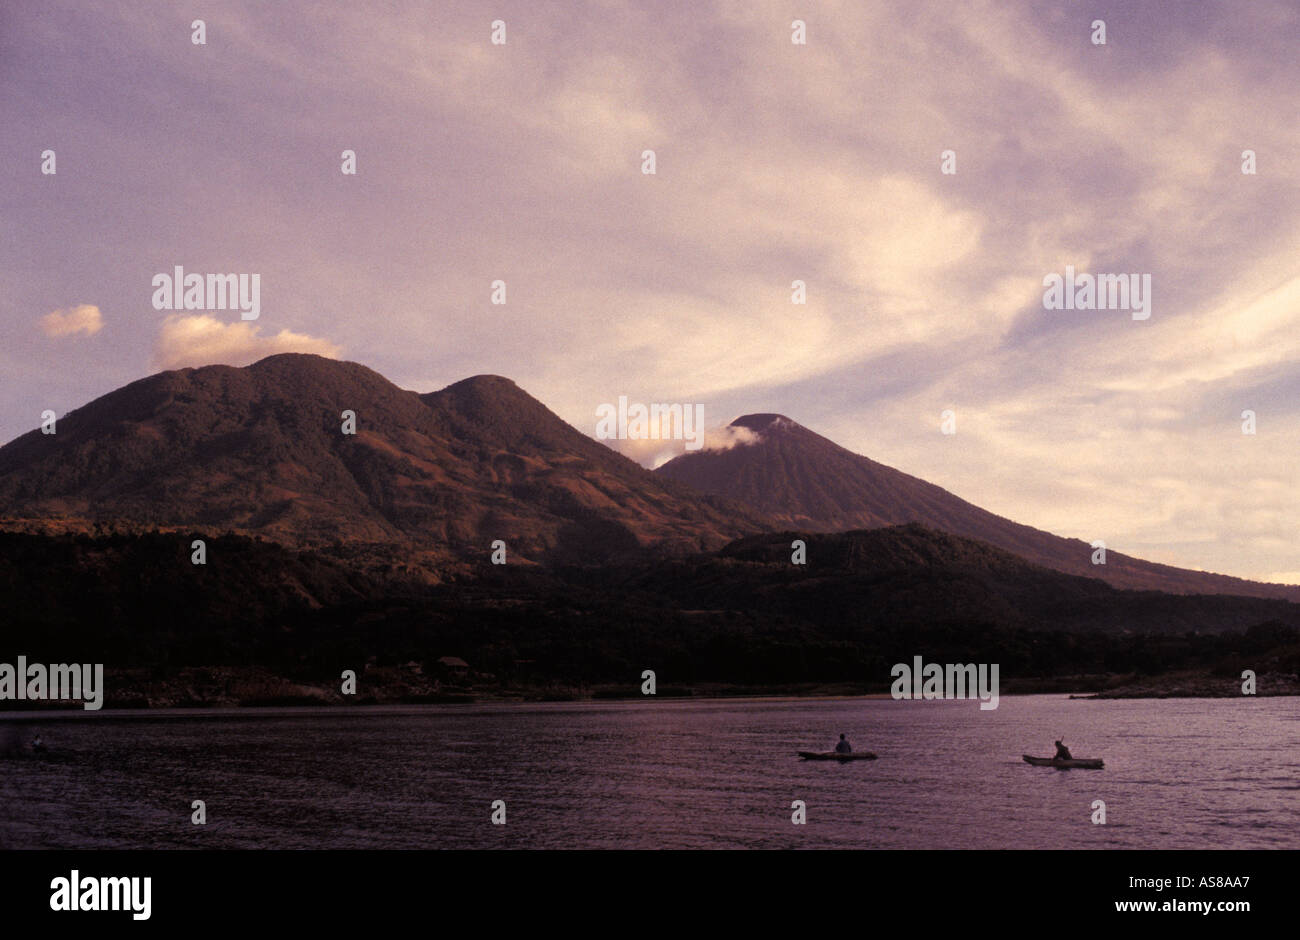 Fishermen in canoes at dawn Santiago Atitlan Lake Atitlan Guatemala Atitlan and Toliman volcanoes - Stock Image